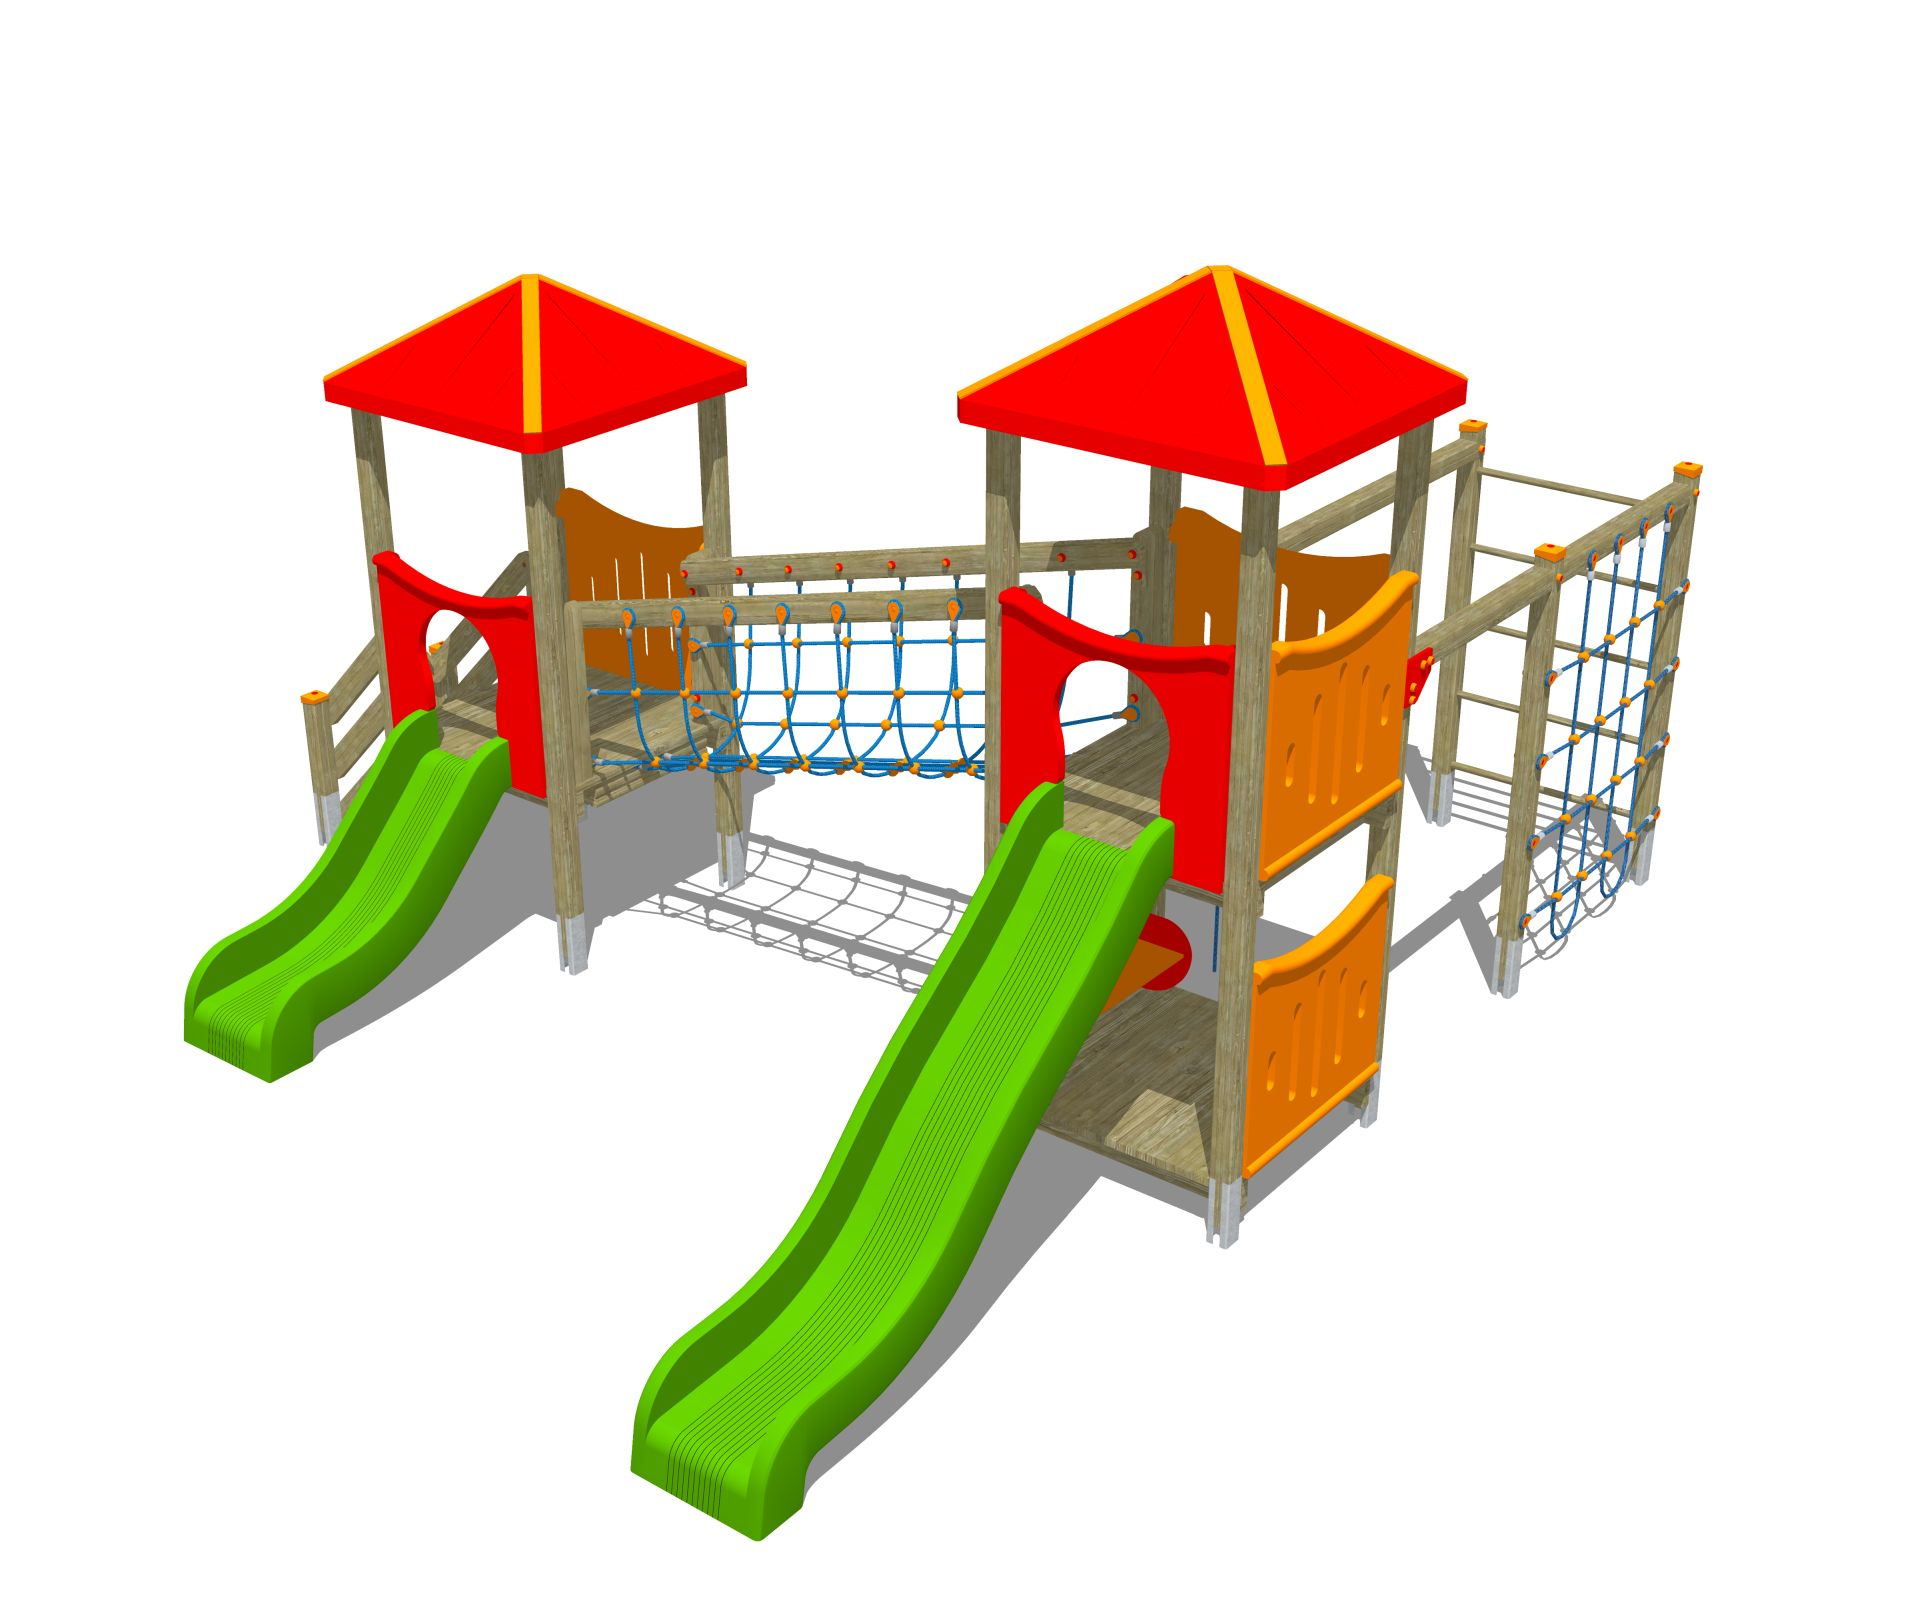 Holzhof MAX & SULTAN Max 2 towers, 1 polyethylene slide h 84 + 1 h 144, stairway + rope wall climber